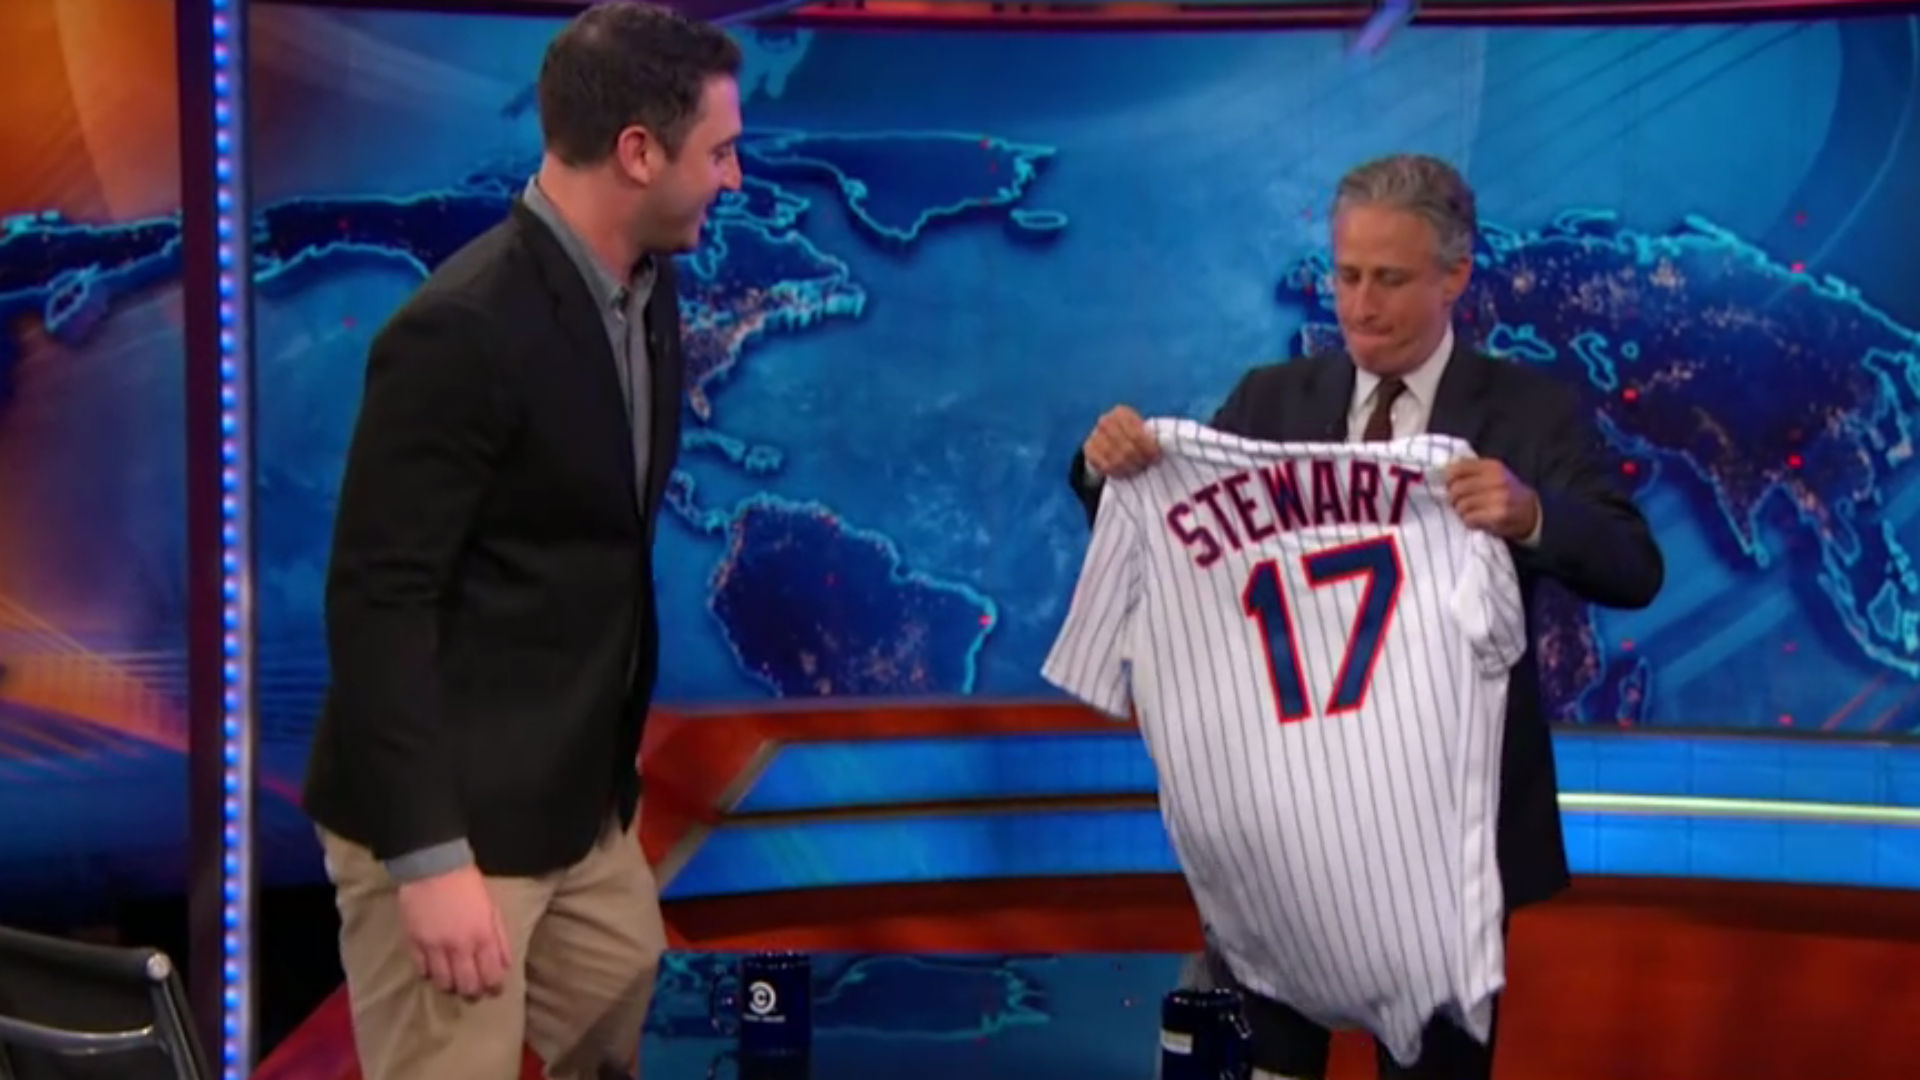 Jon Stewart asks Matt Harvey how Jacob deGrom's hair smells